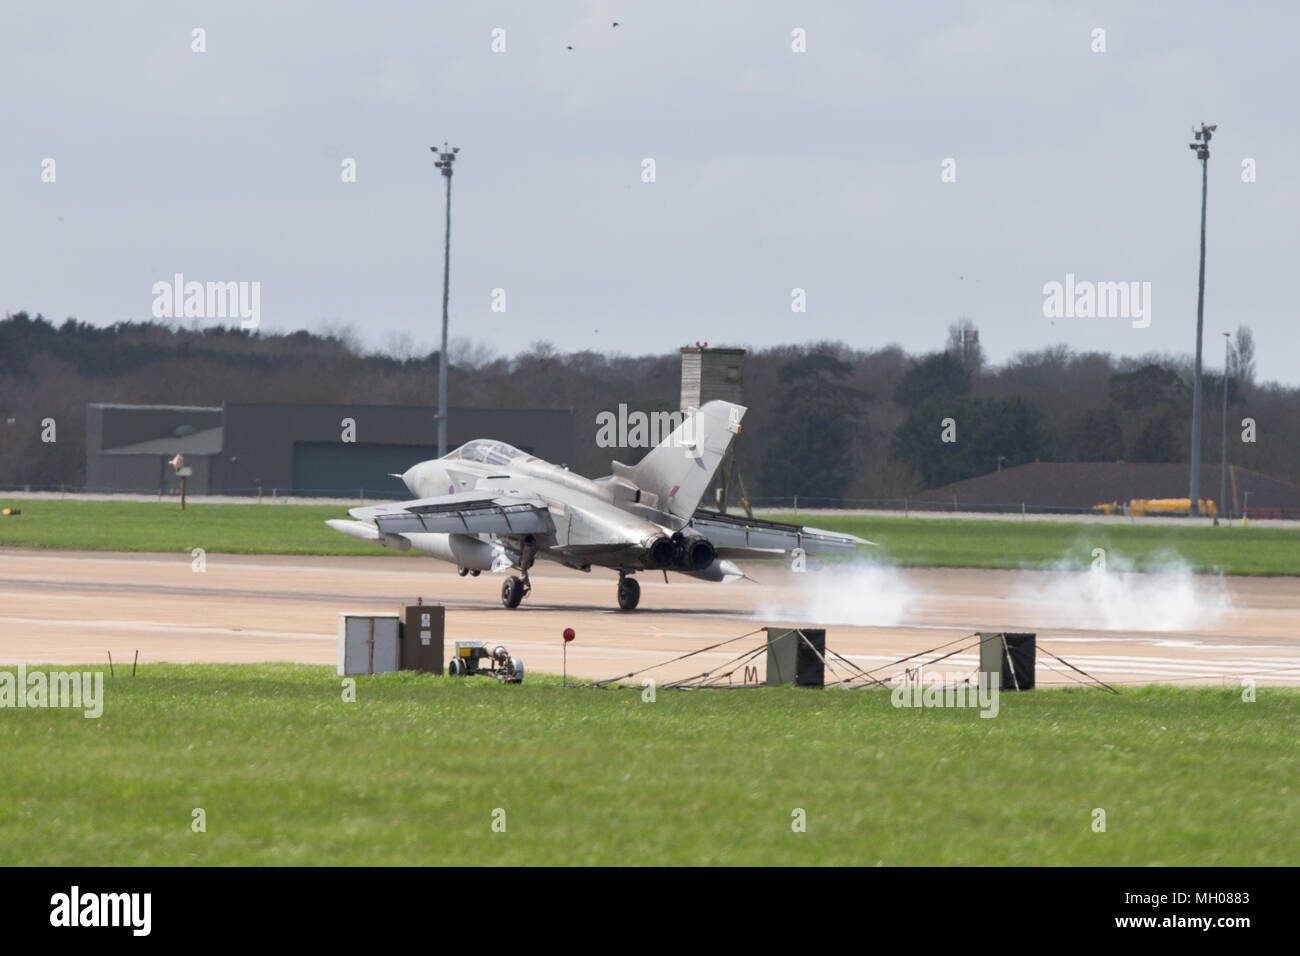 Tornado Jets at RAF Marham in Norfolk on Monday afternoon (April 16th)   back training after the successful bombing raids in Syria at the weekend.  Britain's Tornado jets were spotted training at an airfield in Norfolk today (Mon) after carrying out successful bombing raids in Syria at the weekend.  The fighter planes were seen taking off and landing at RAF Marham as they carried out sorties over the North Sea.  Engineers were also seen checking over the jets as Theresa May is set to face MP's questions this afternoon about her decision to authorise the air strikes.  Opposition parties say MPs Stock Photo